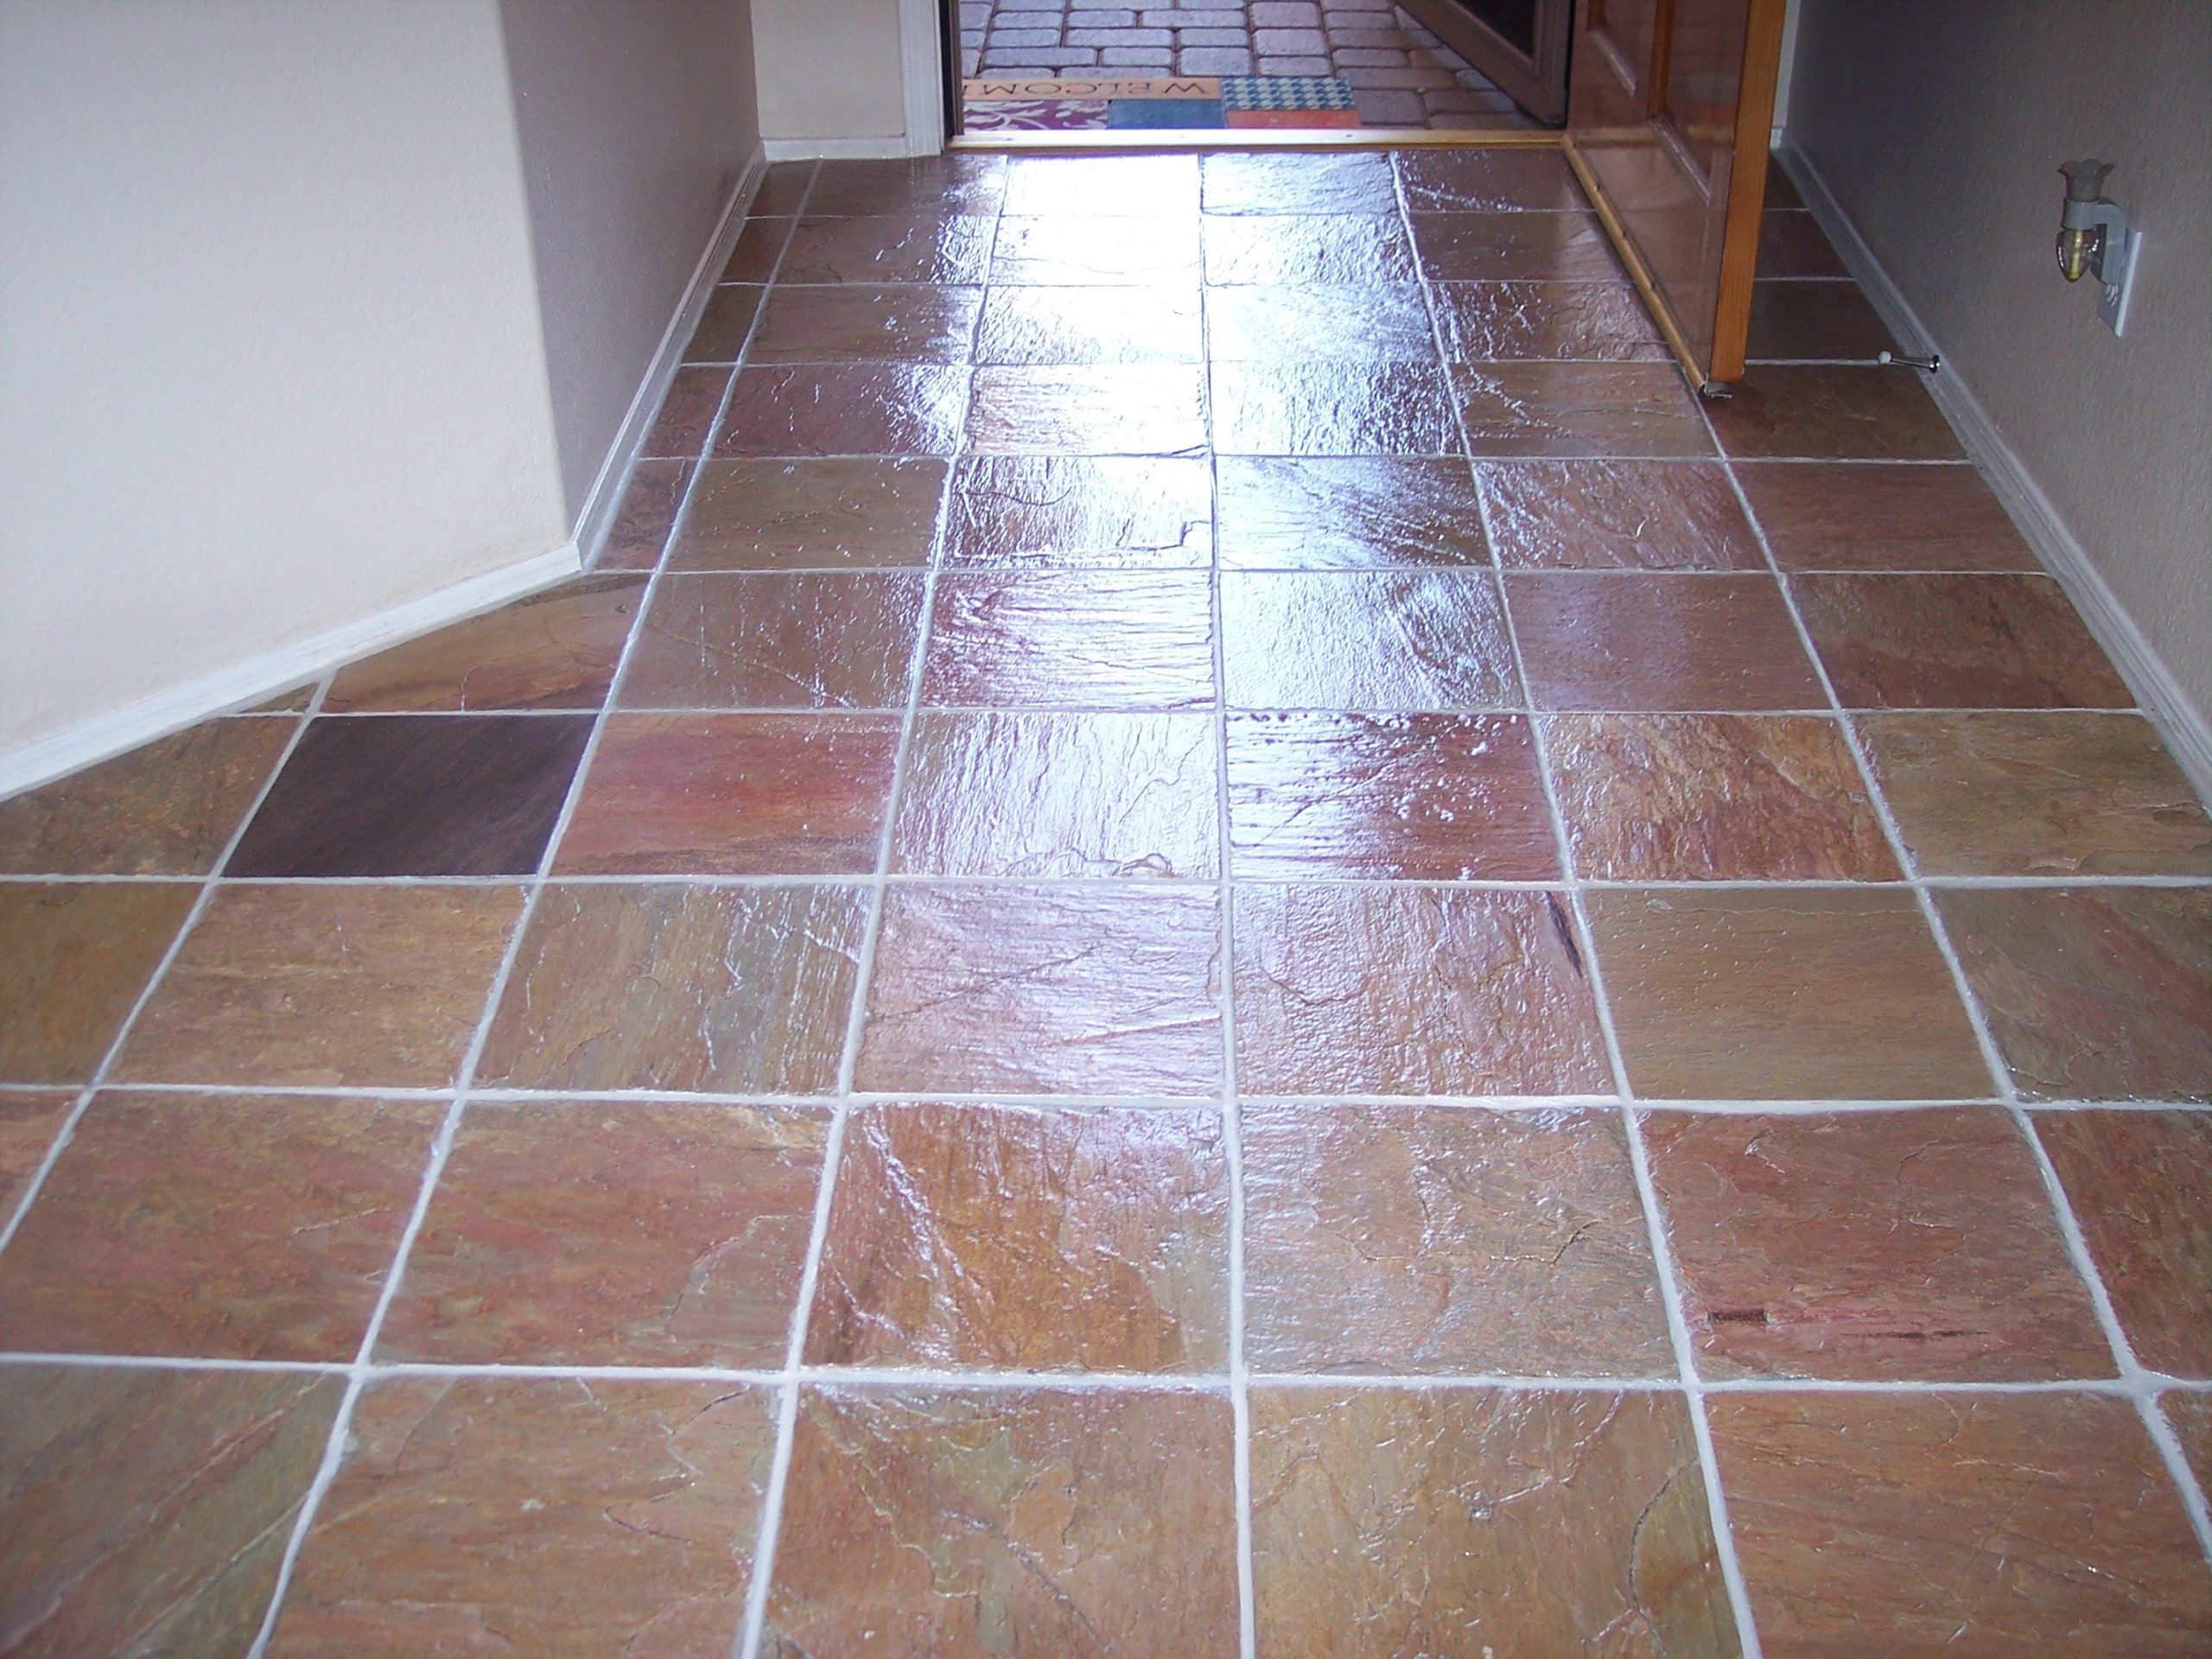 Slate Stone Tile Cleaning Desert Tile Grout Care - How do i clean the grout on my tile floor